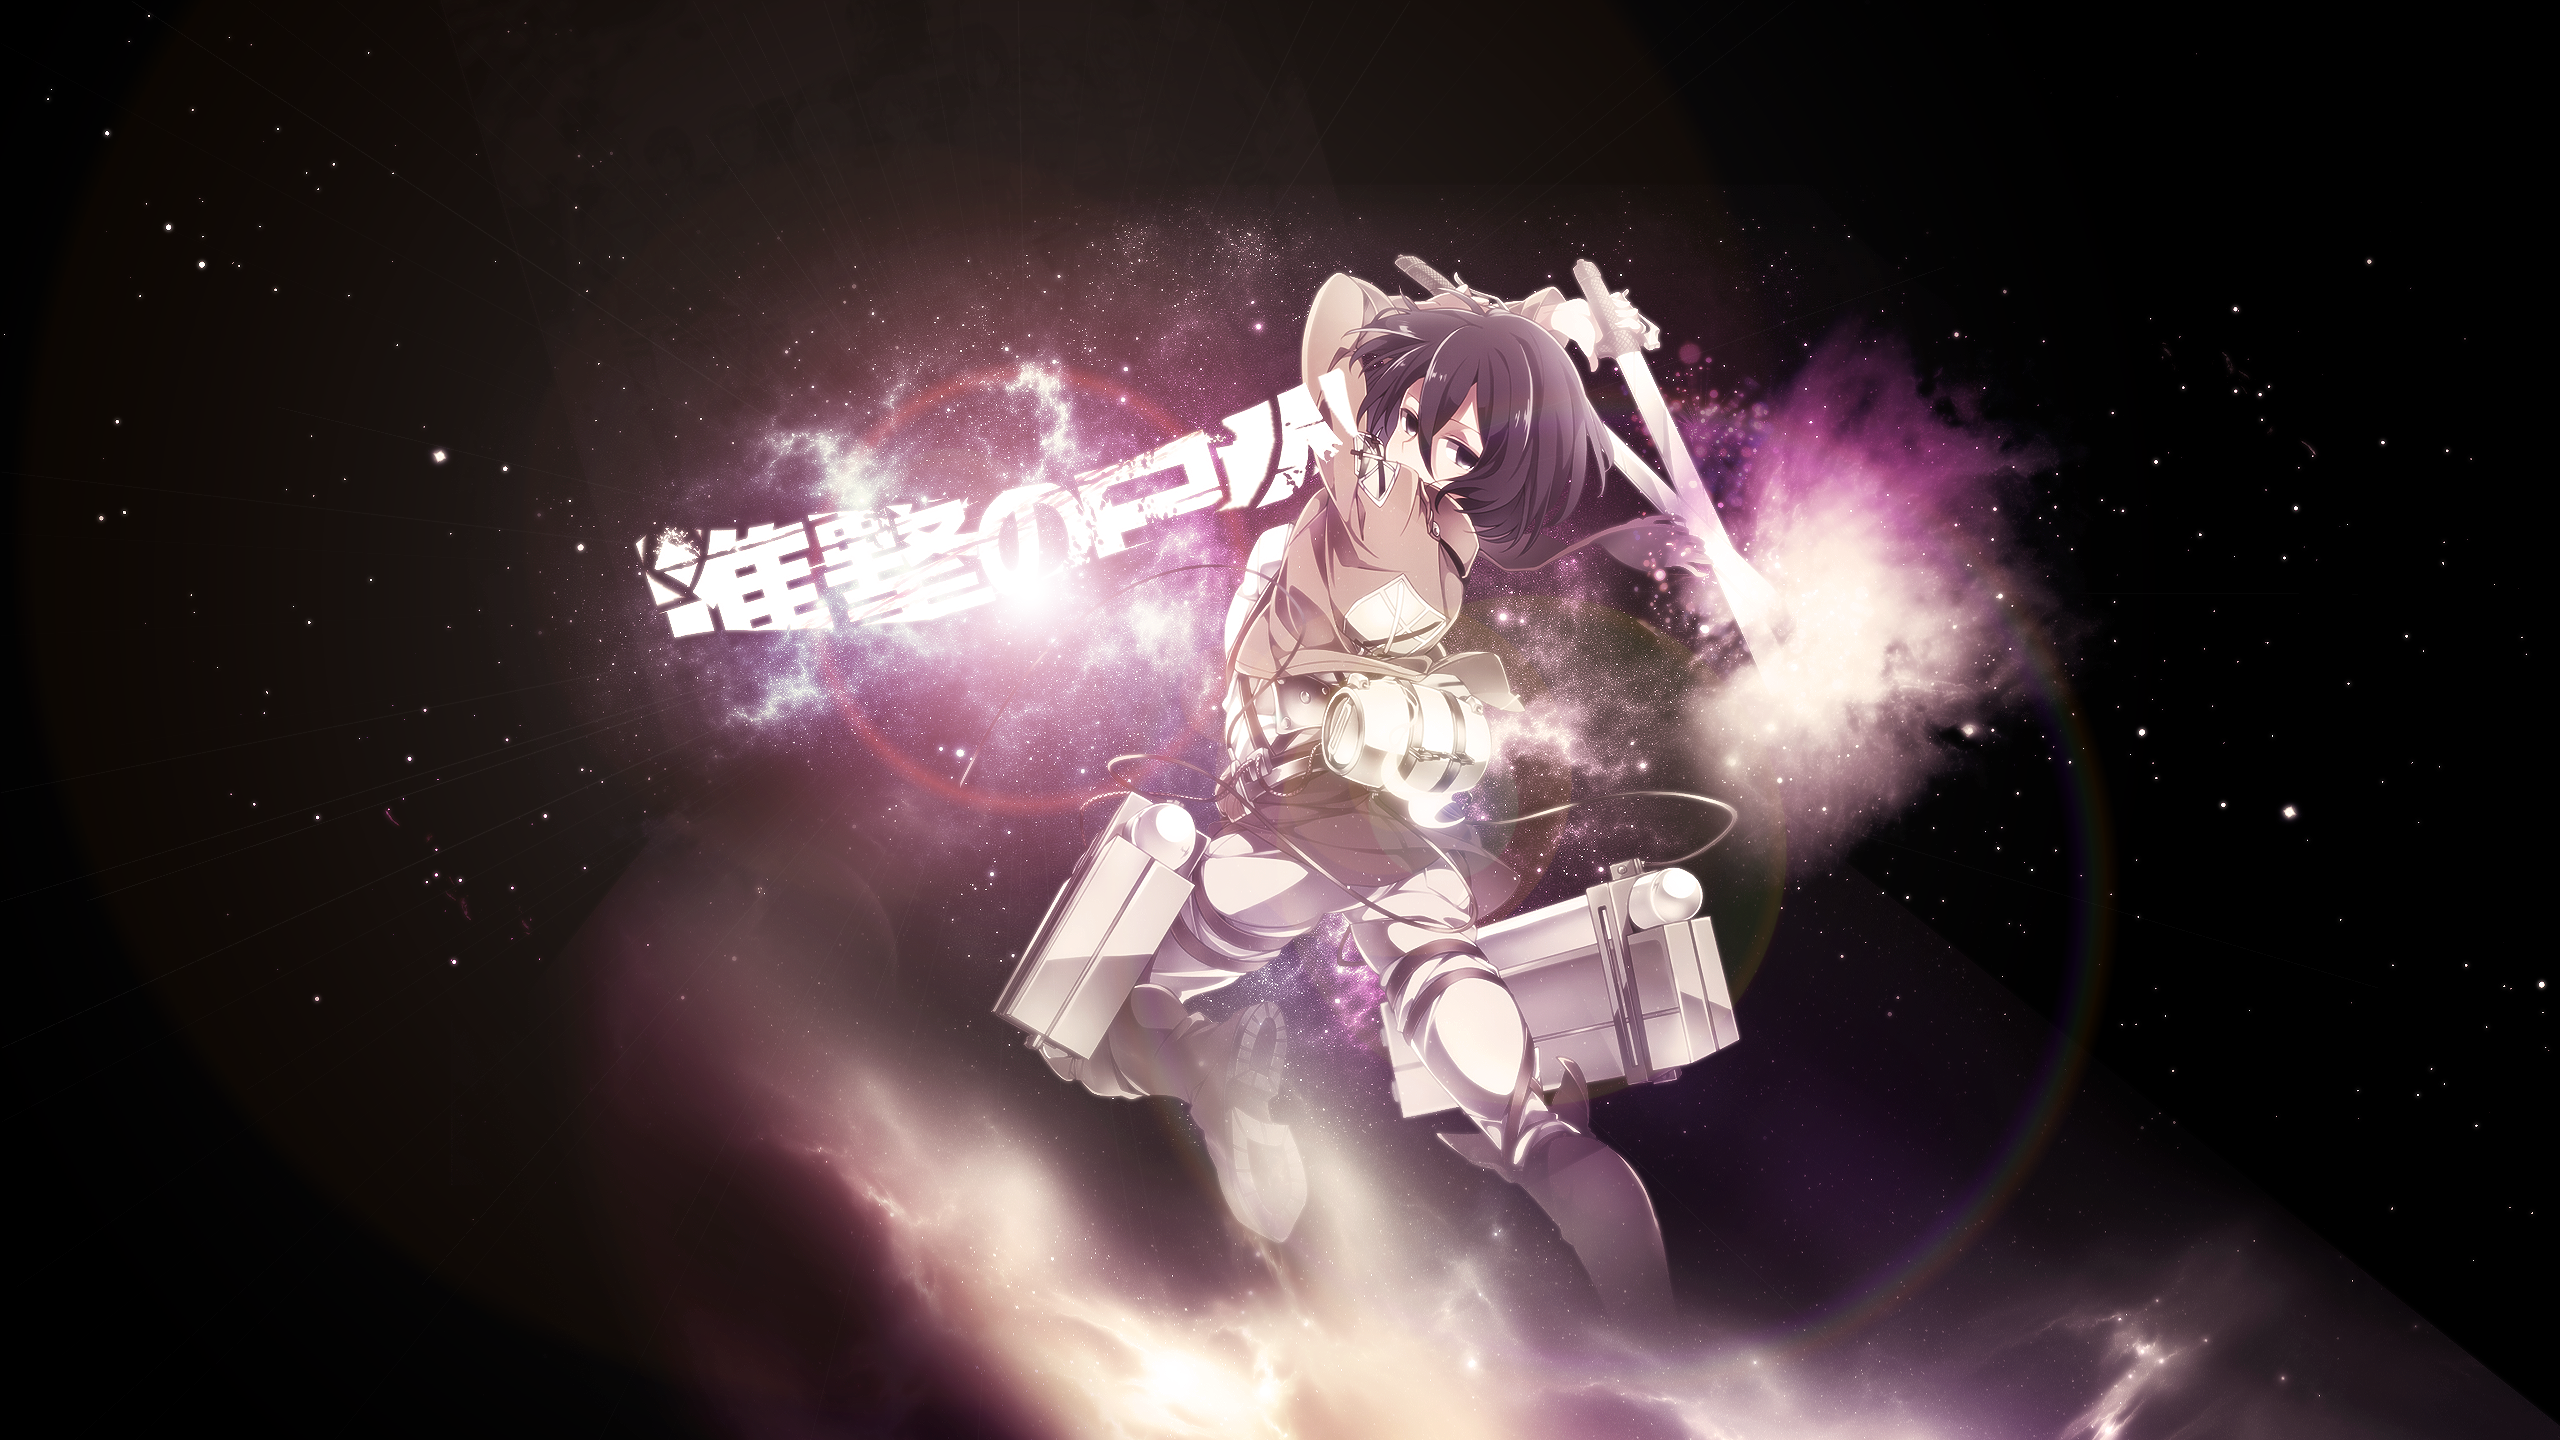 wallpapers mikasa ackerman hd - photo #36